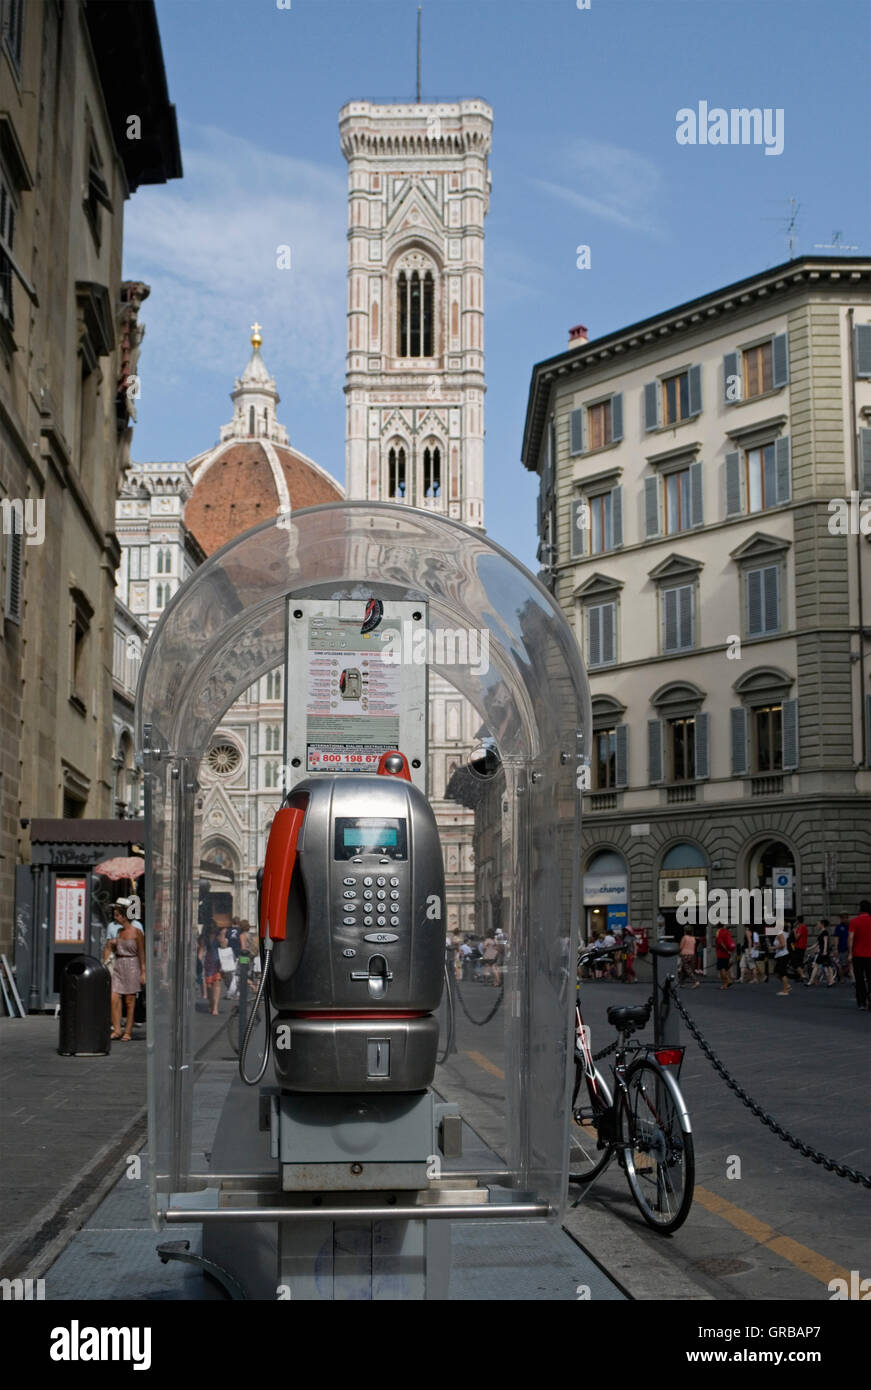 Public Telephone Box And Cathedral In The Background Florence - Stock Image